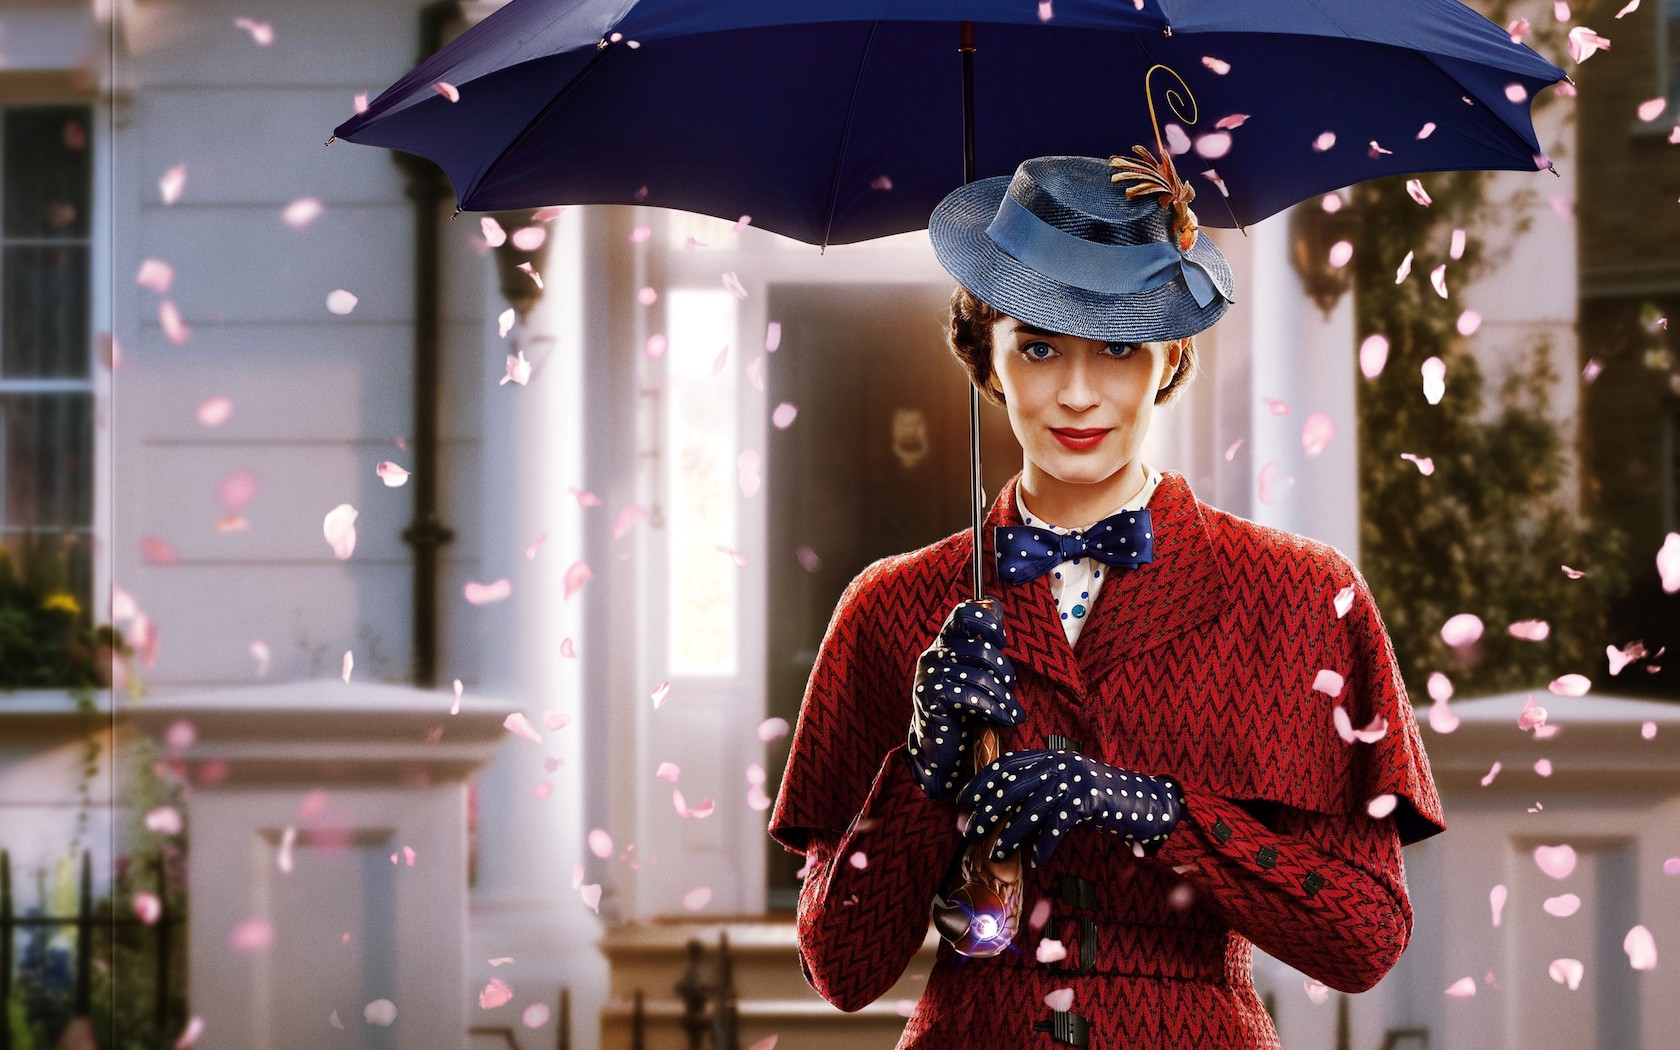 Mary Poppins inspired